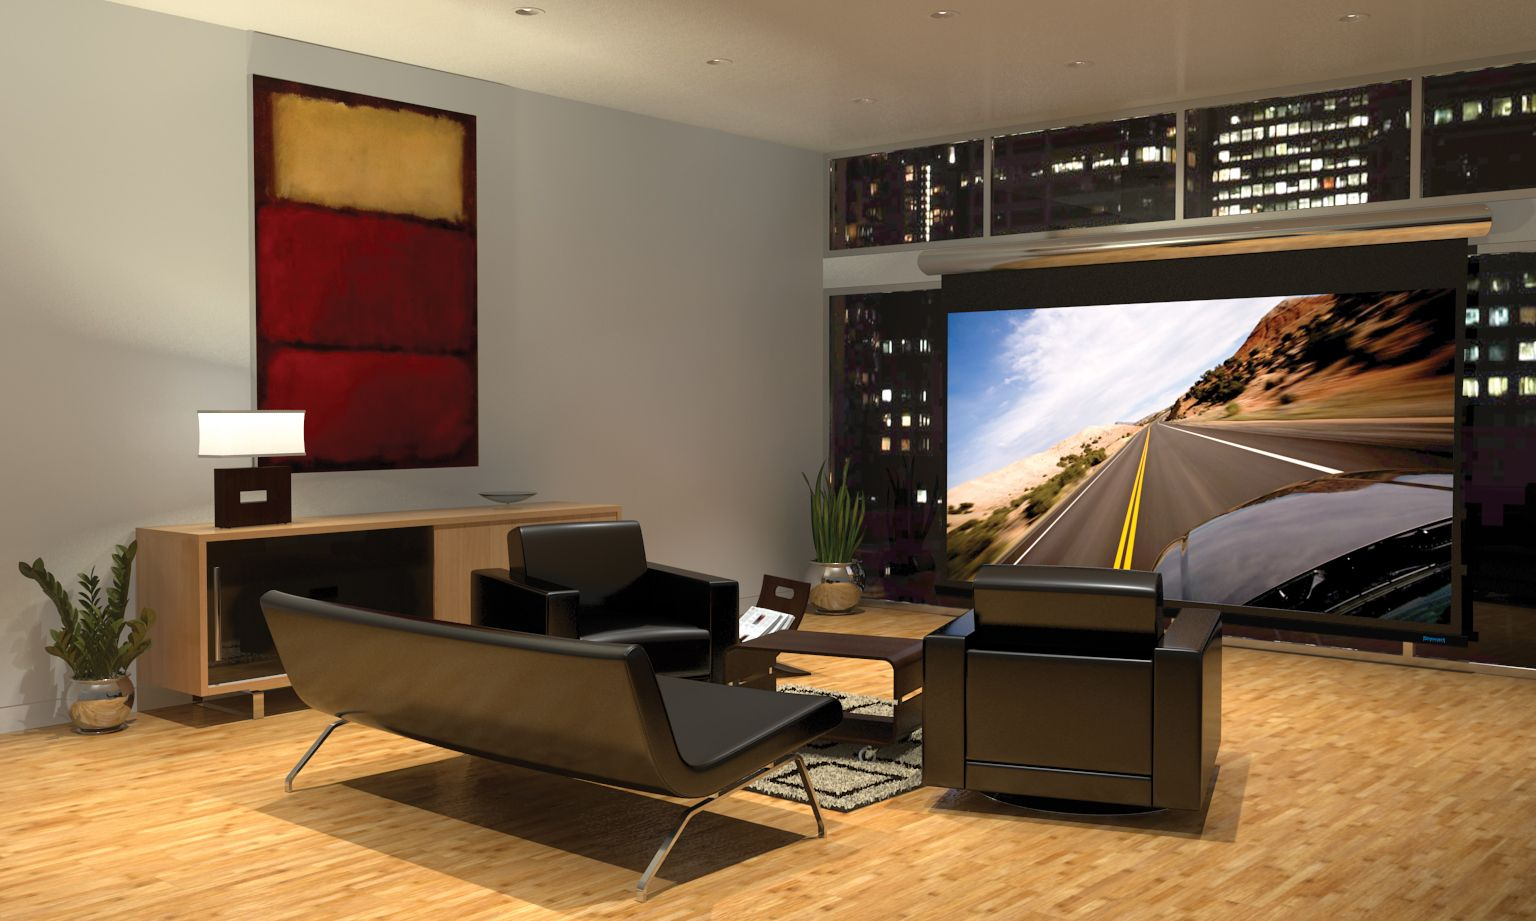 Entertainment Room Ideas 20 beautiful entertainment room ideas | projection screen